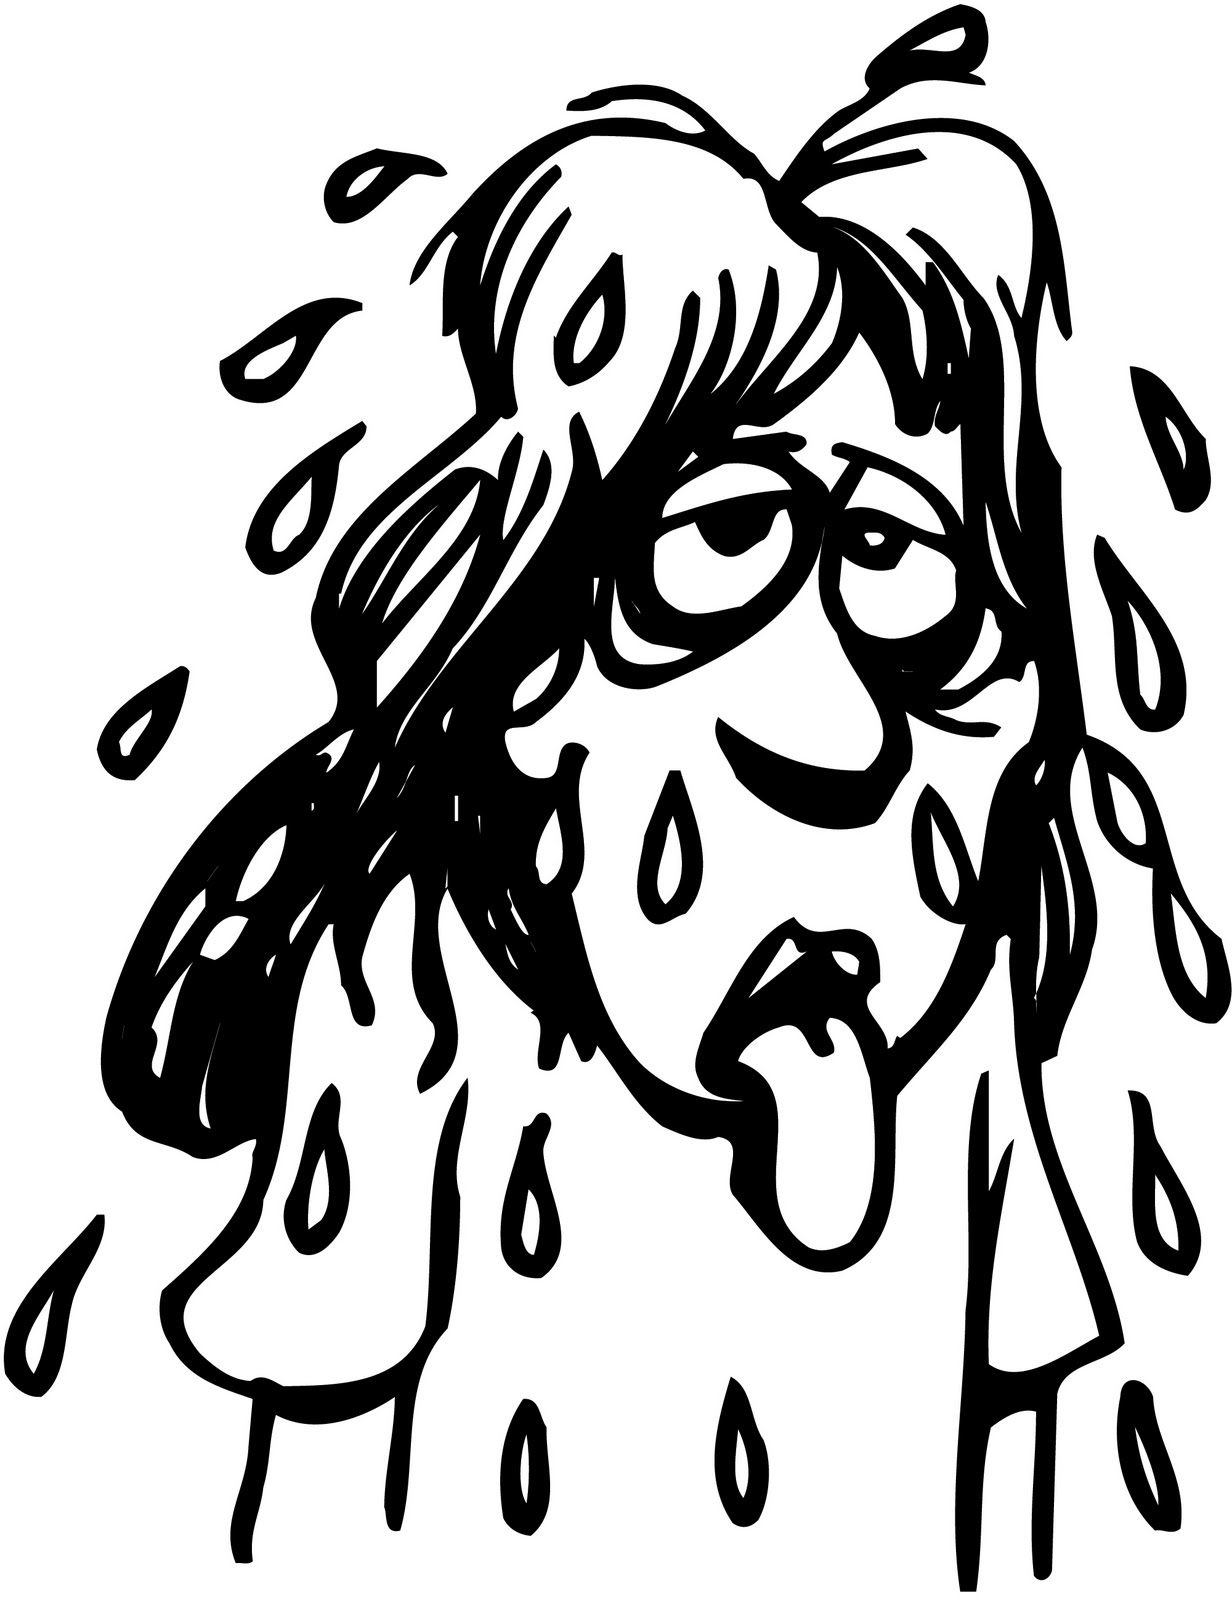 Displaying 11> Images For - Sweaty People Clipart... H20 Delirious Face